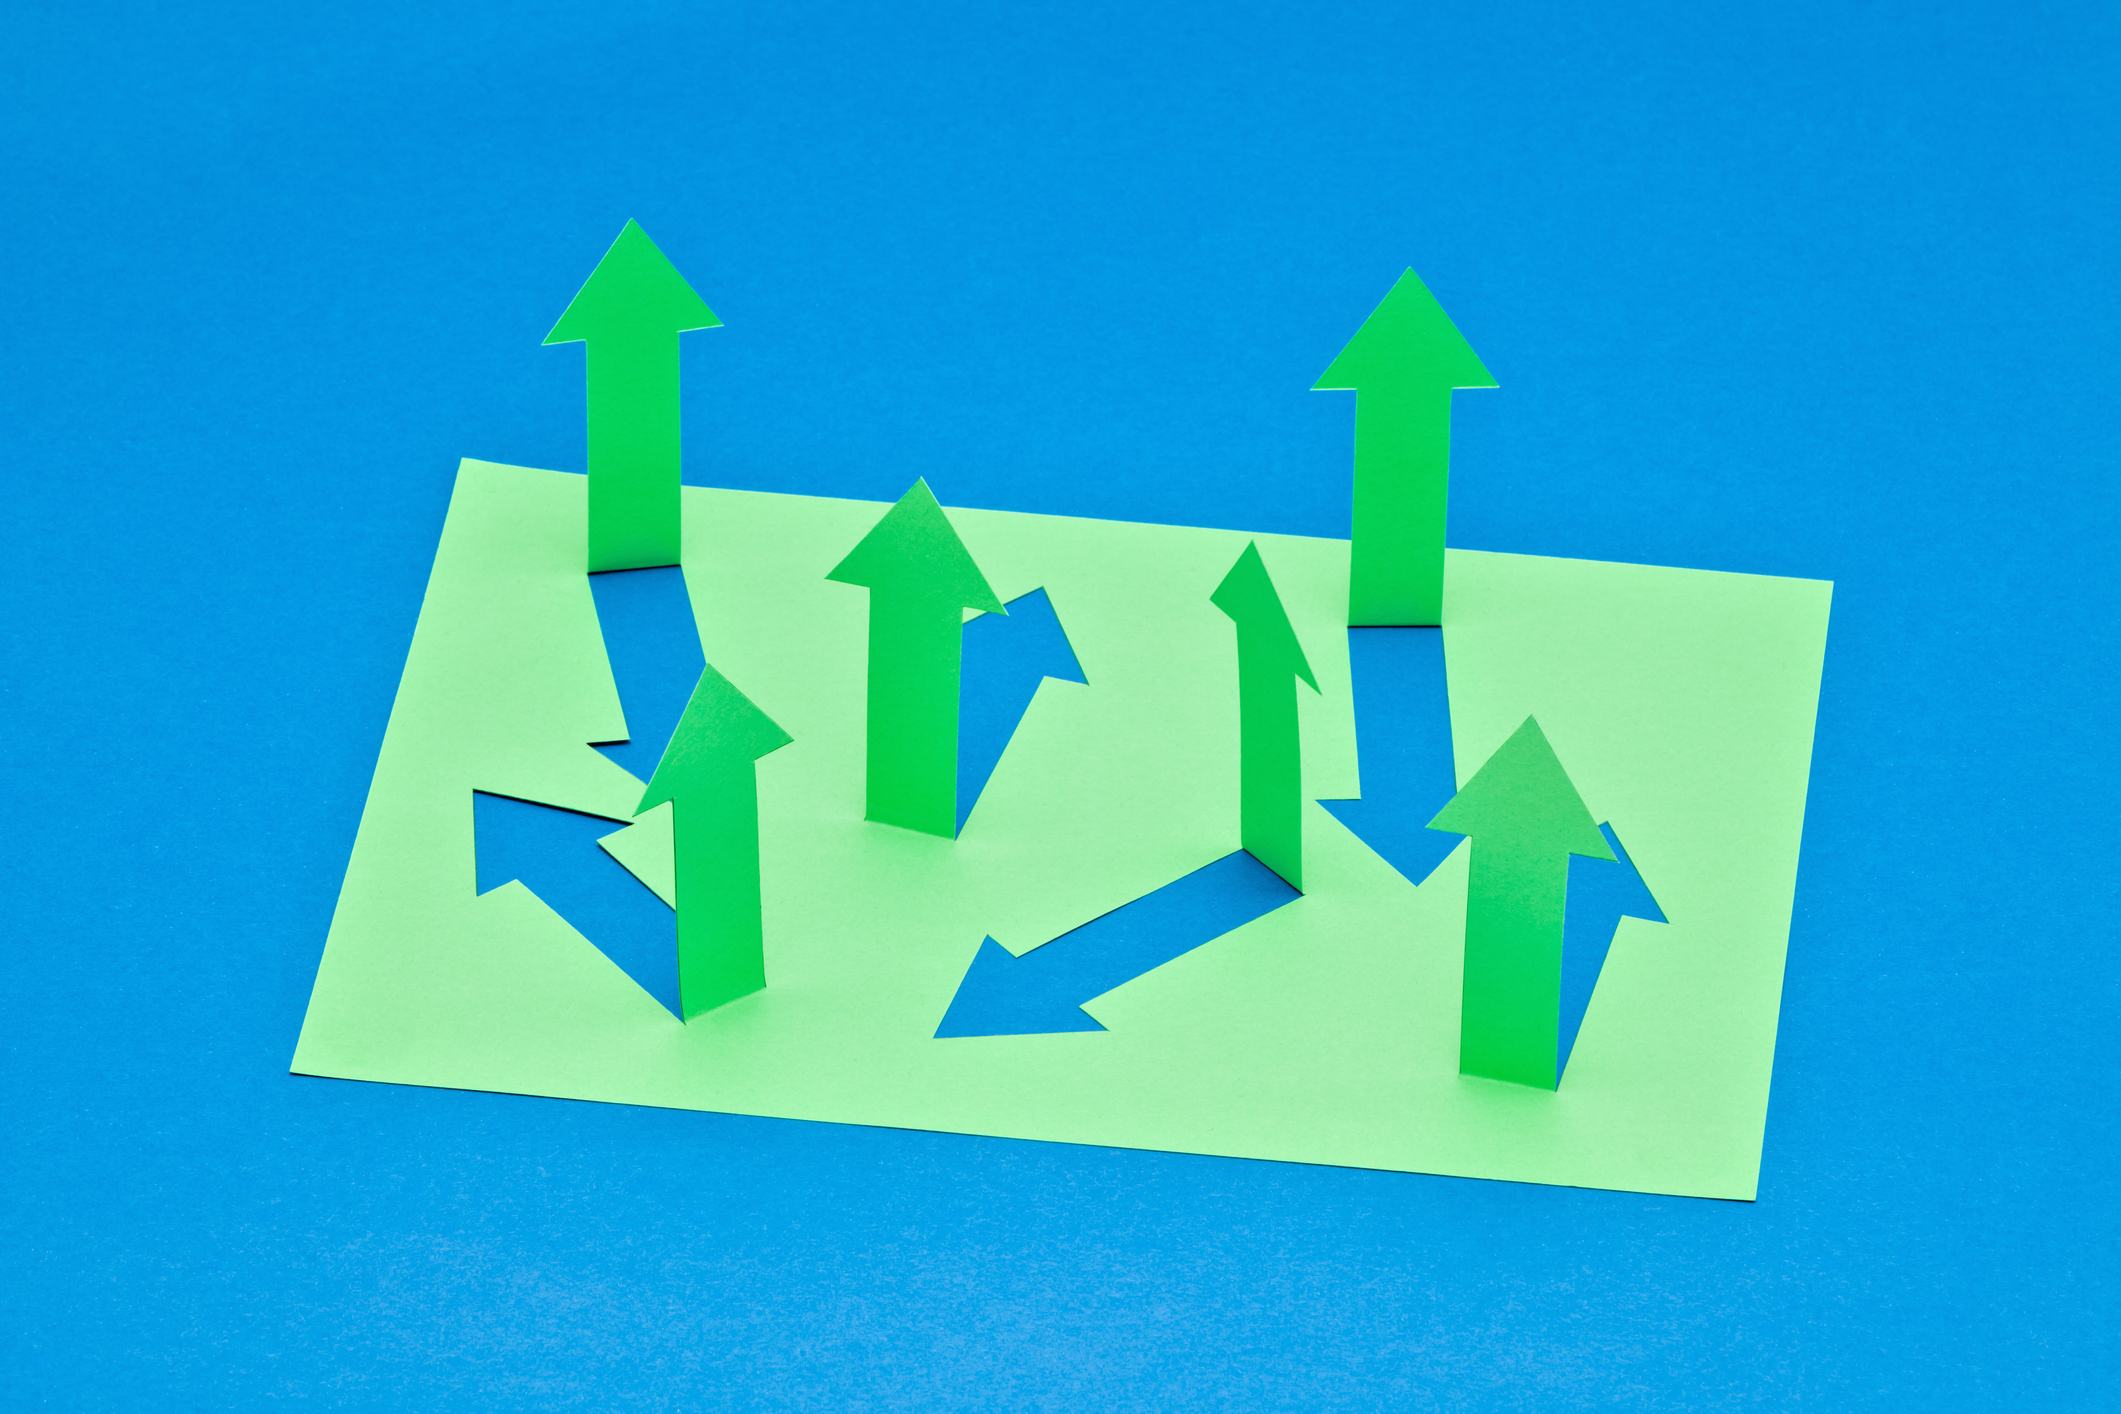 Green arrows cut out from a sheet of paper